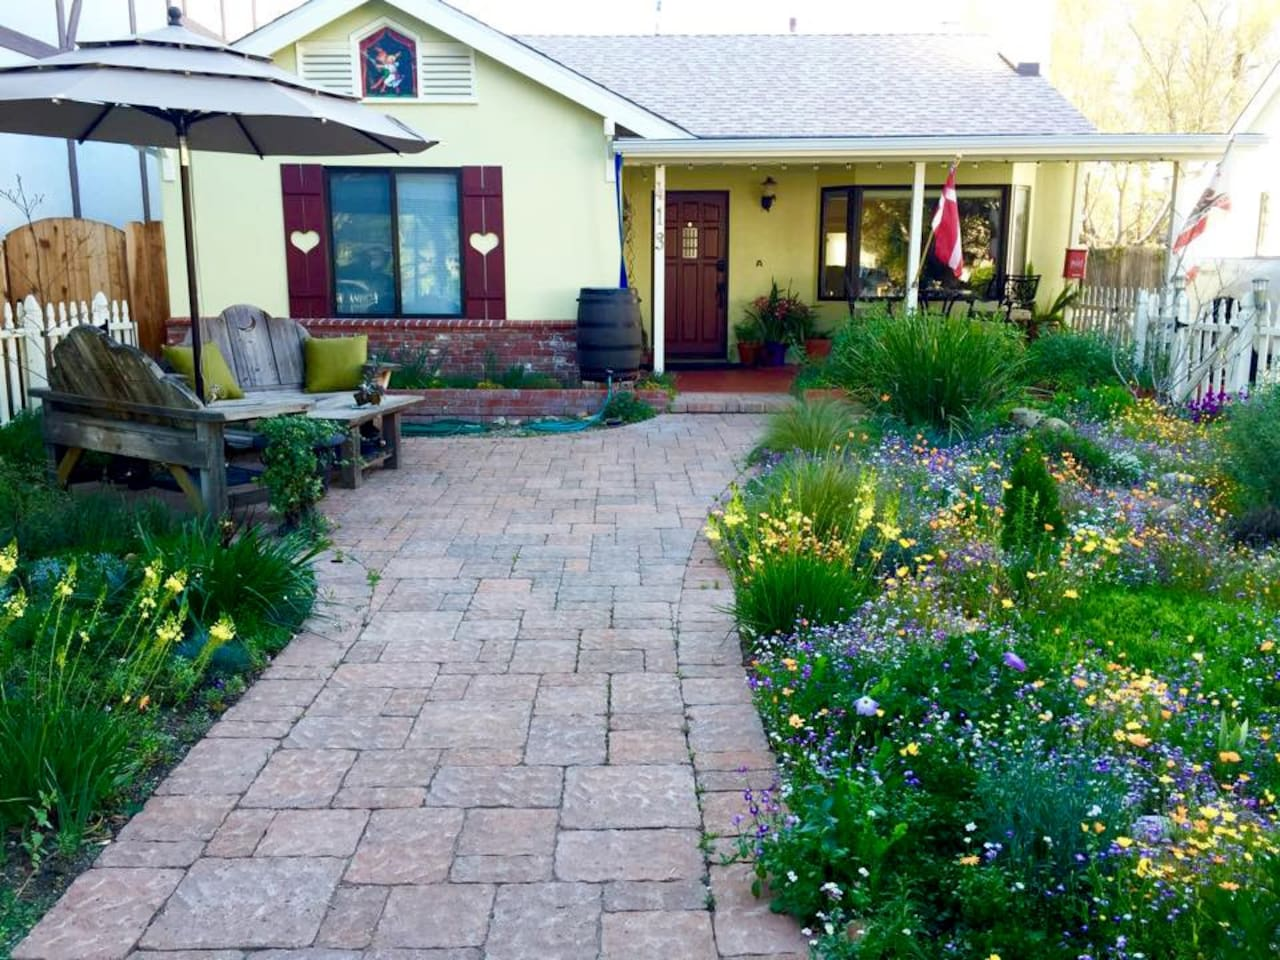 View of Great Dane Guest House front garden and house